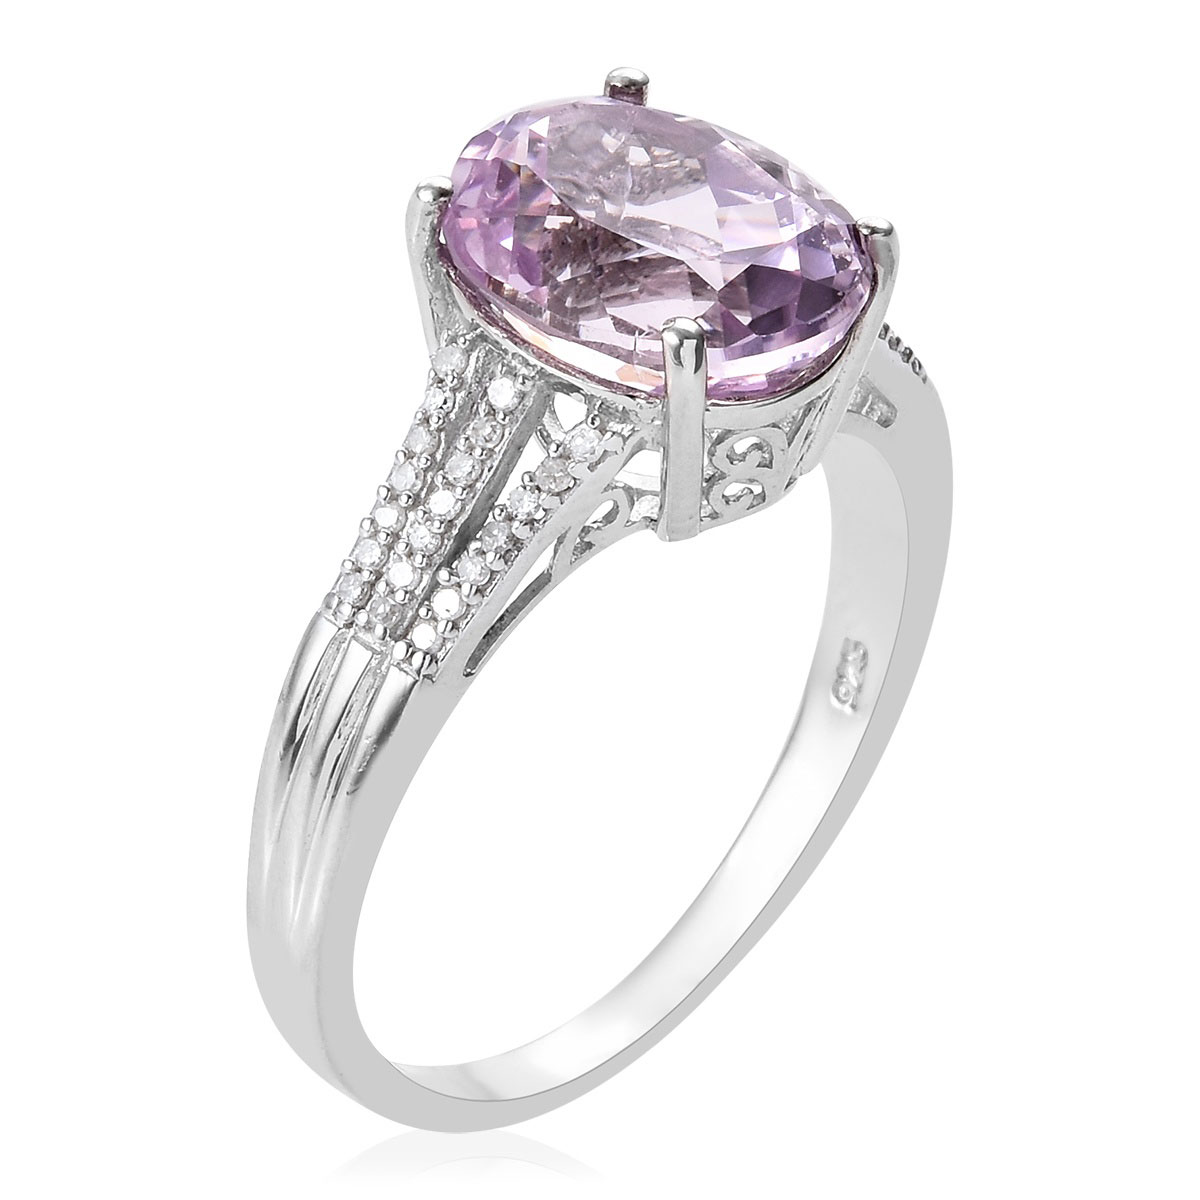 AA Premium Martha Rocha Kunzite, Diamond (0.15 ct) Ring in Platinum Over Sterling Silver (Size 11.0) 6.45 ctw